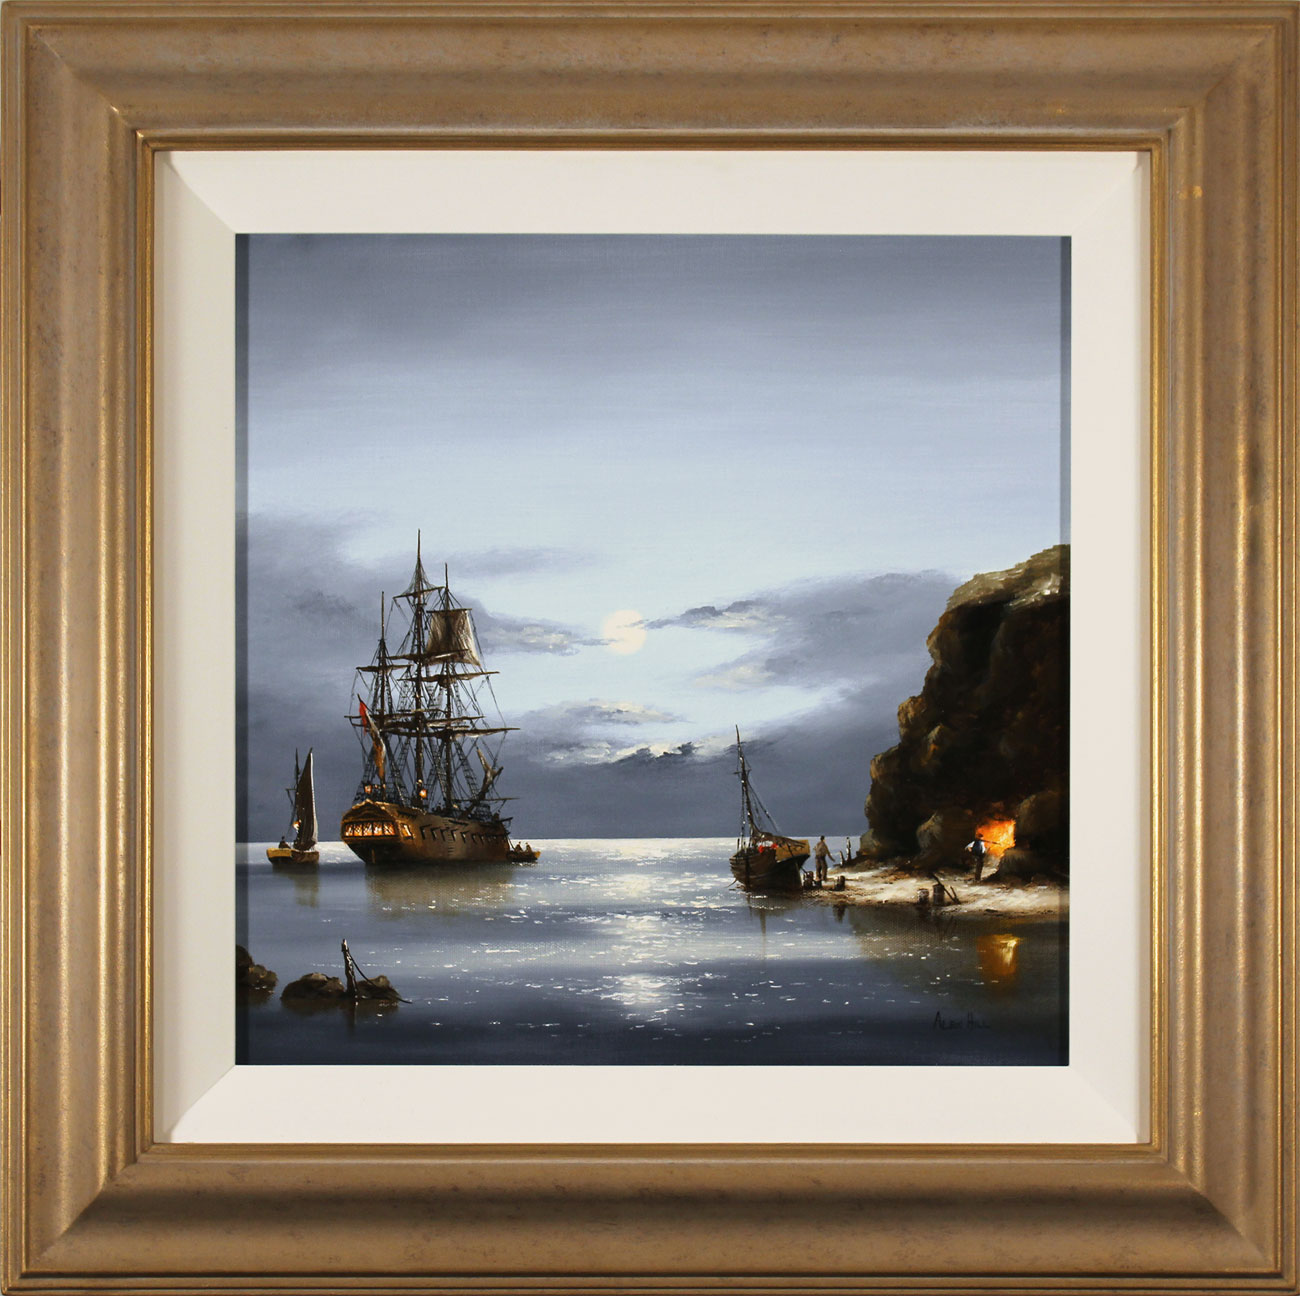 Alex Hill, Original oil painting on canvas, Moonlight Cove. Click to enlarge